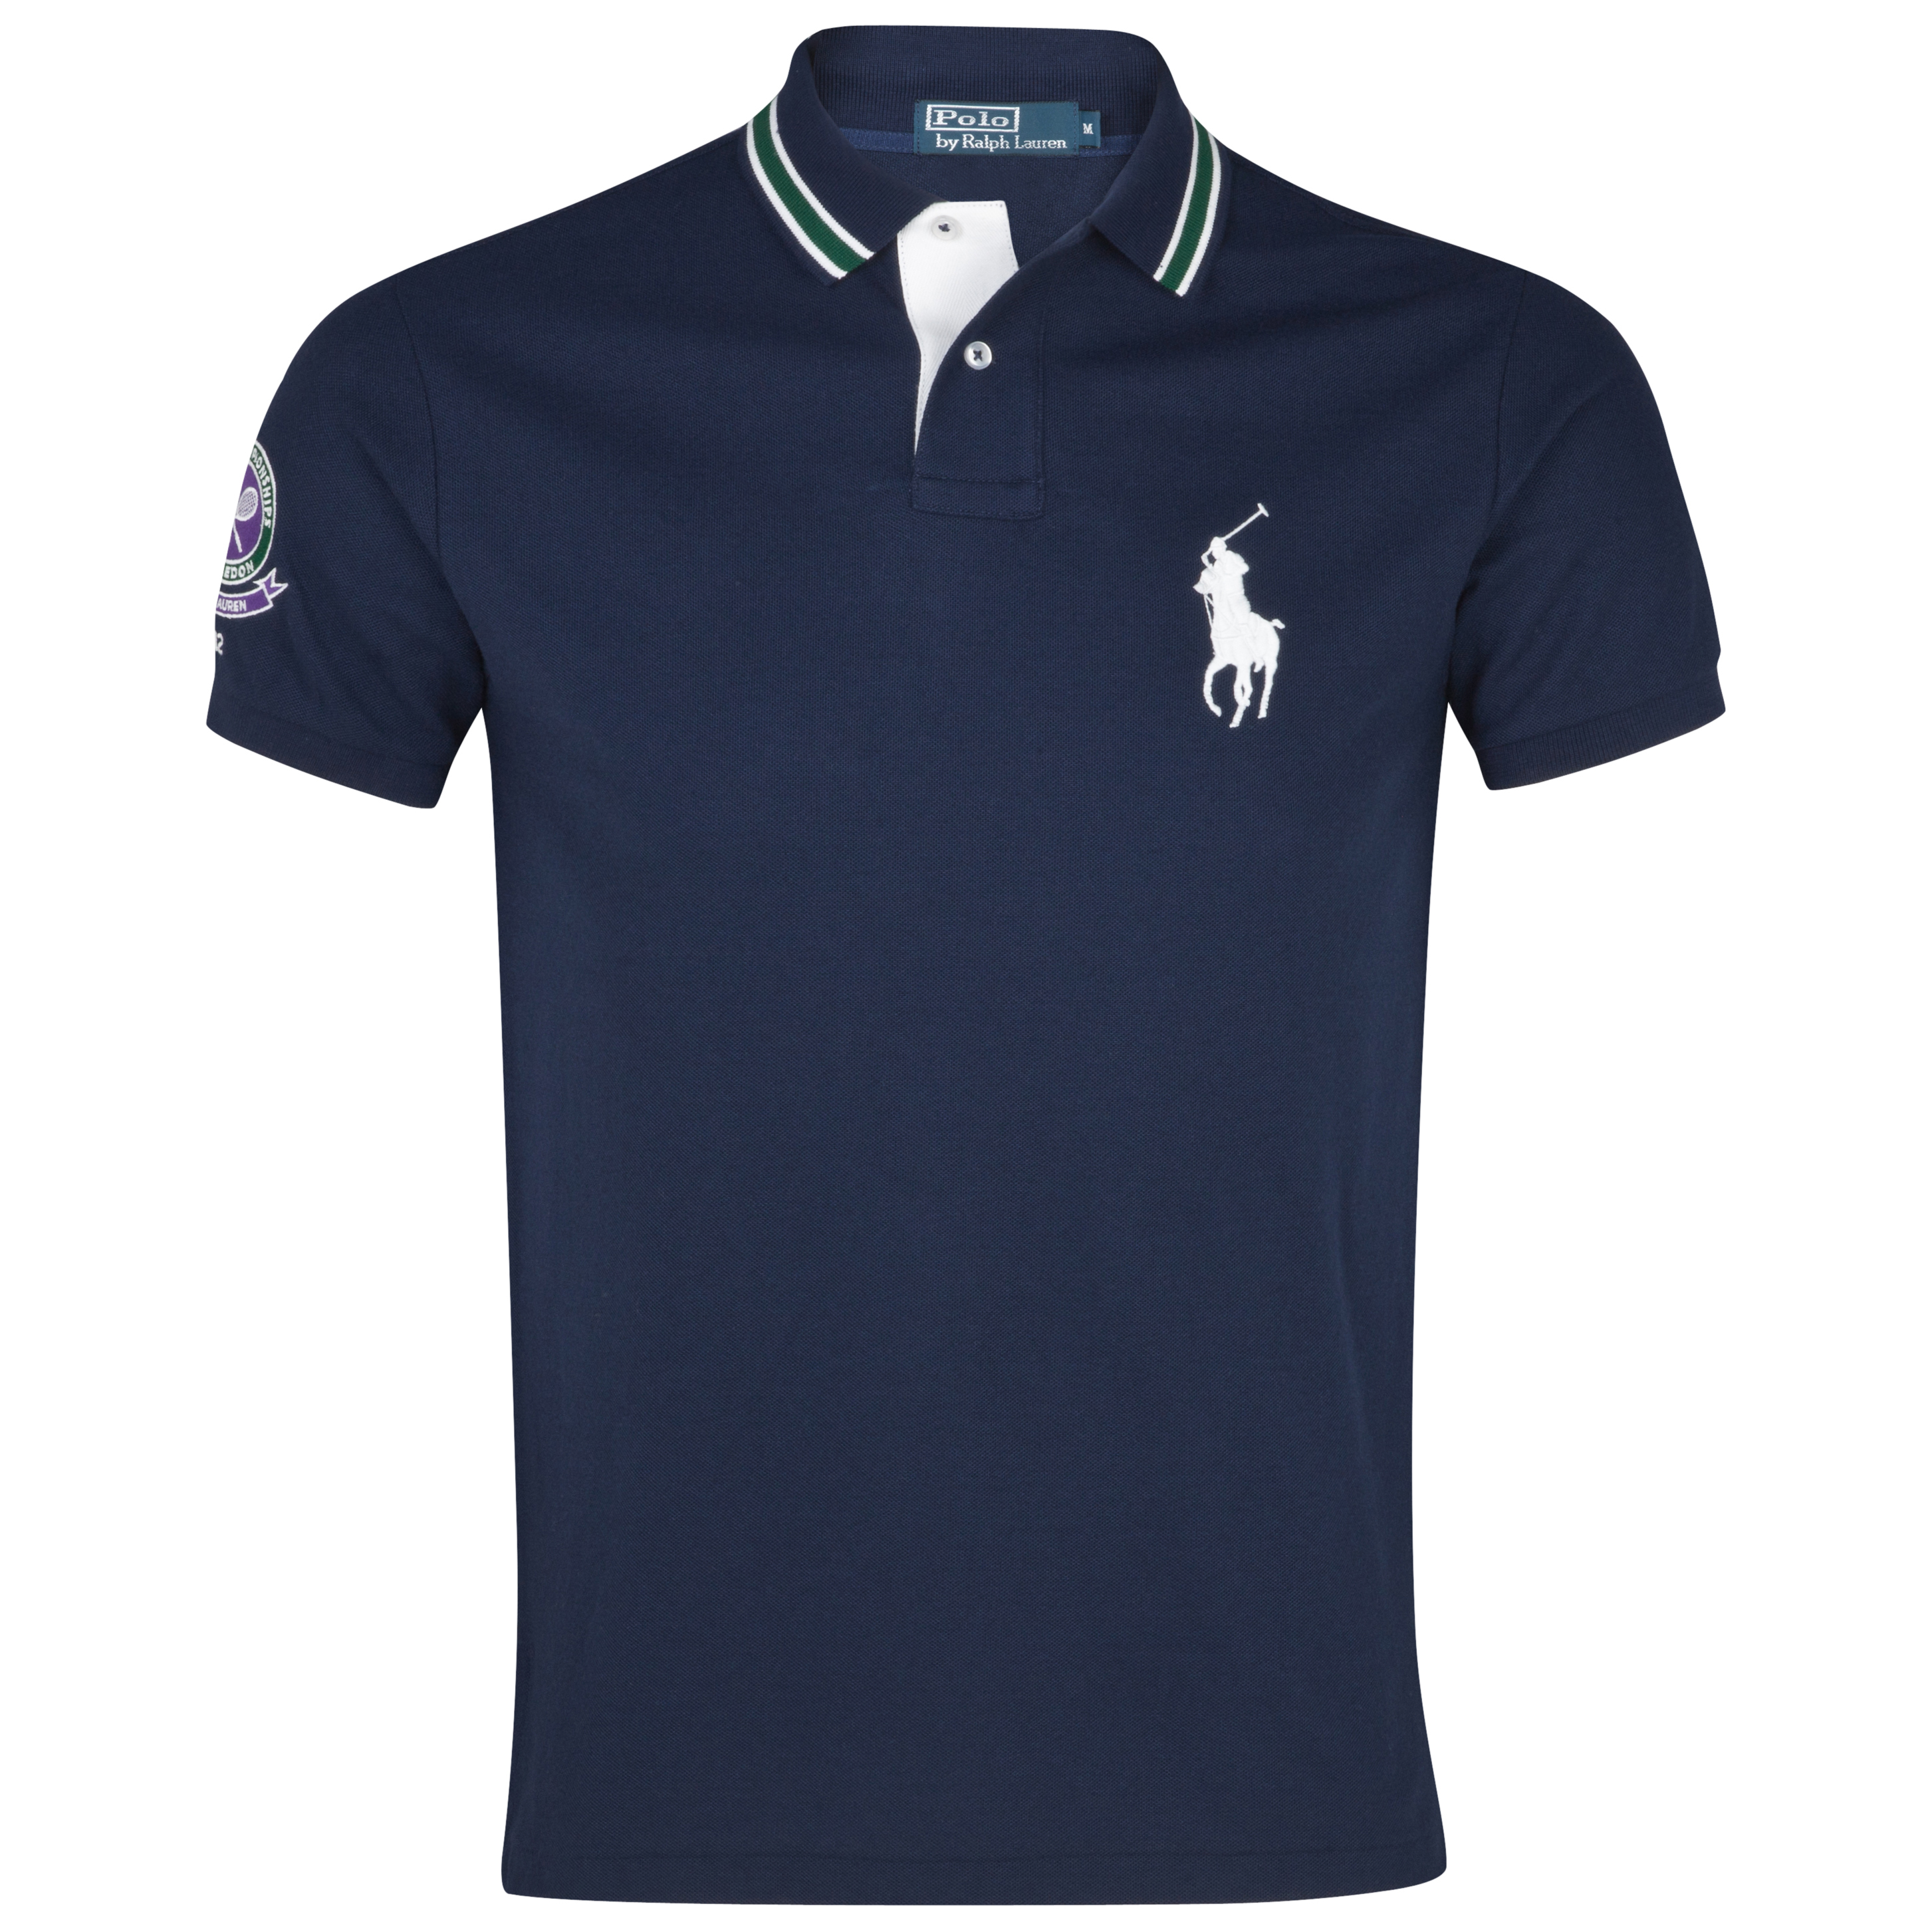 Polo Ralph Lauren Wimbledon Ball Boy Cotton Pique Polo - French Navy - Infant Boys